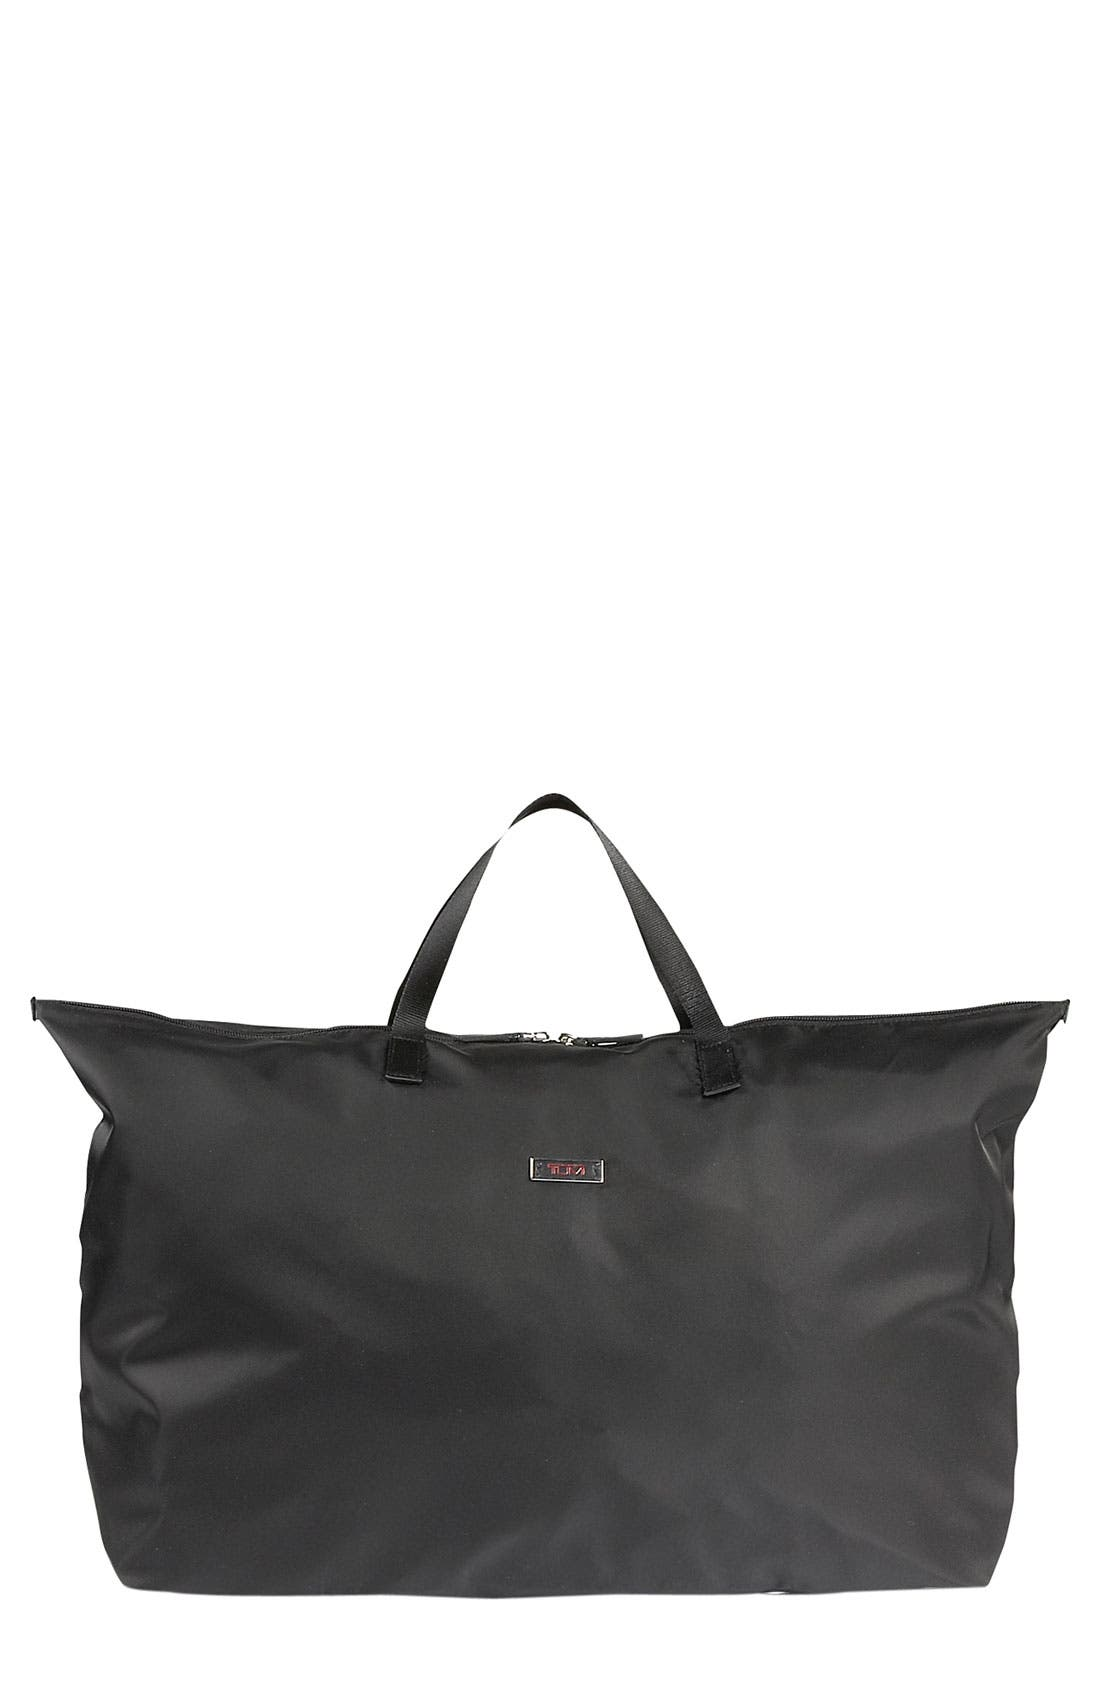 TUMI 'Just in Case' Packable Tote, Main, color, 001